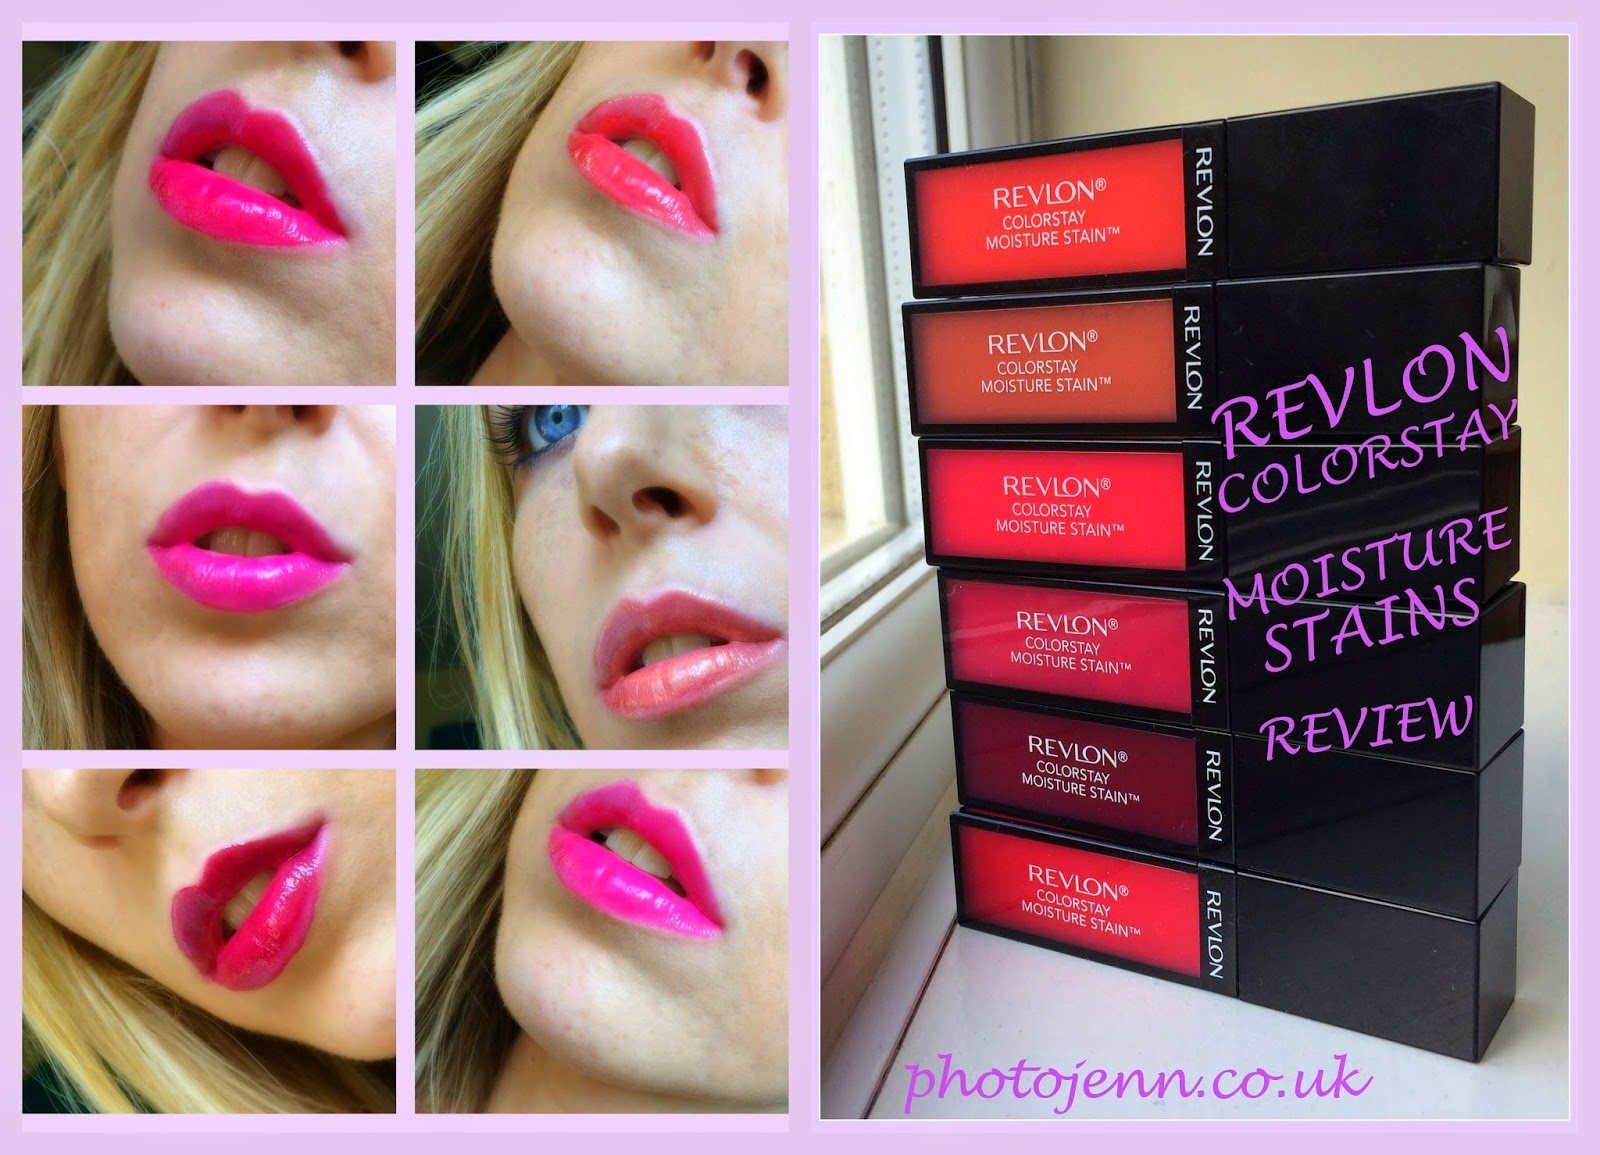 Revlon-colorstay-moisture-stain-review-and-swatches-on-lips